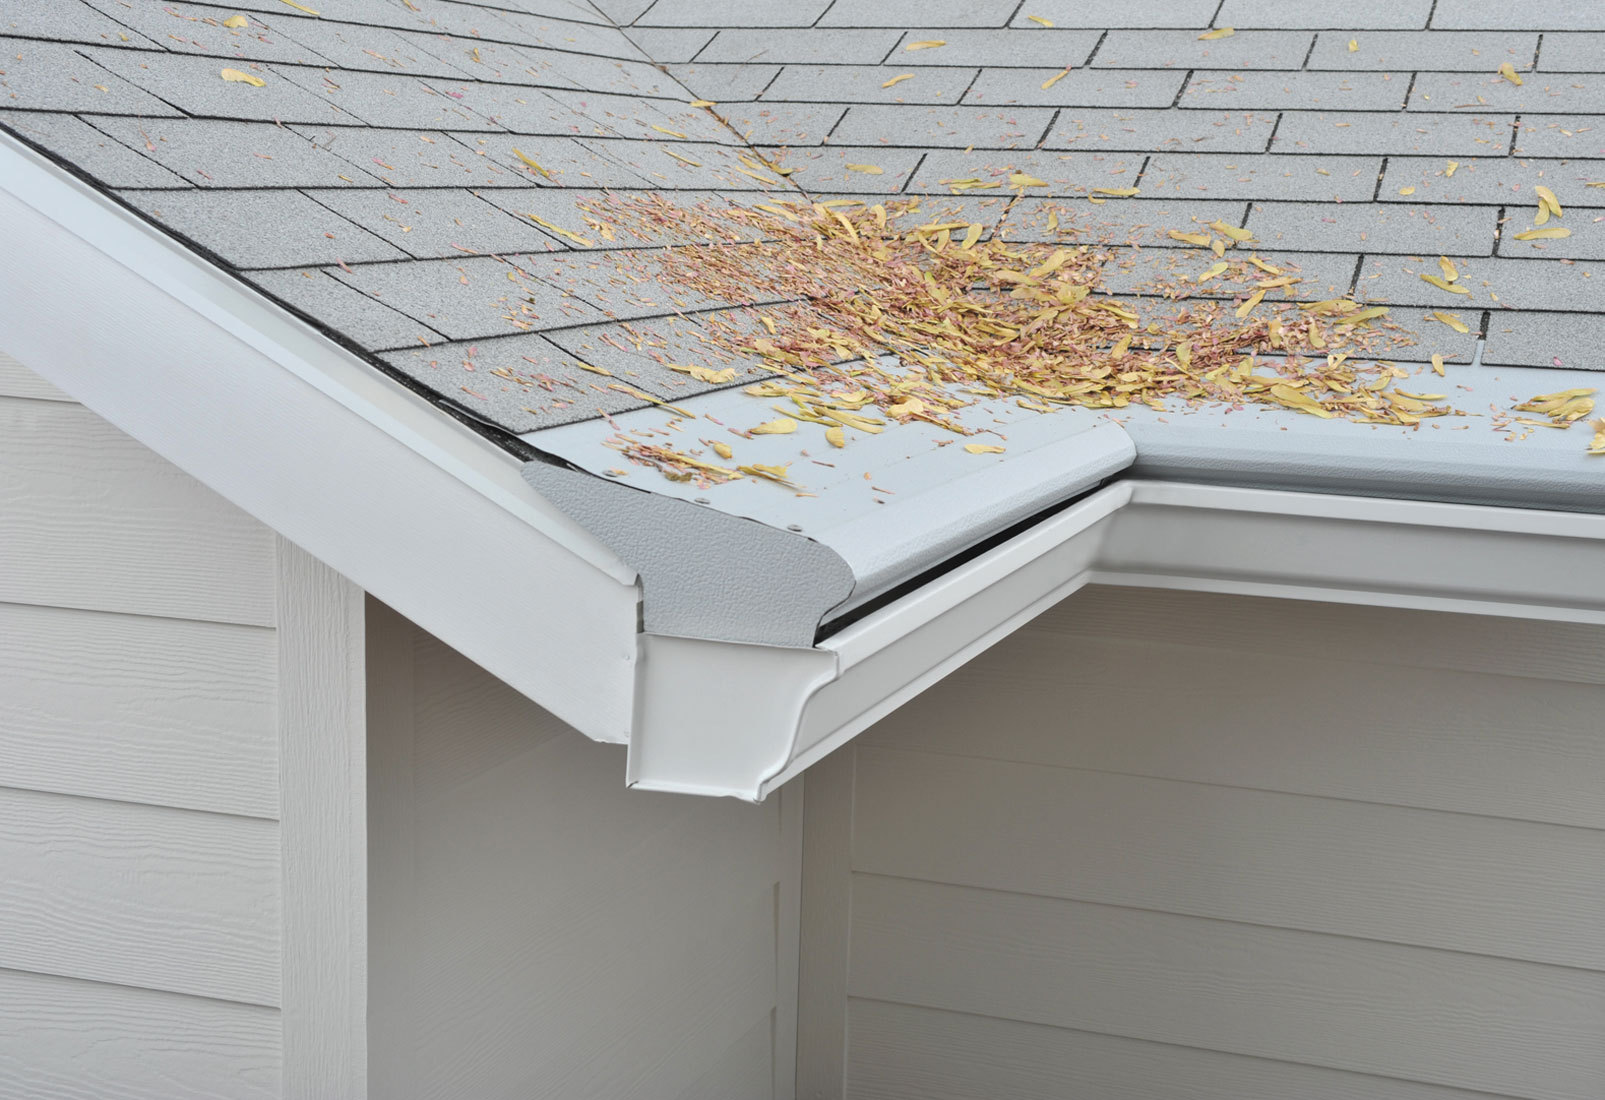 Clean your gutters and downspouts  -